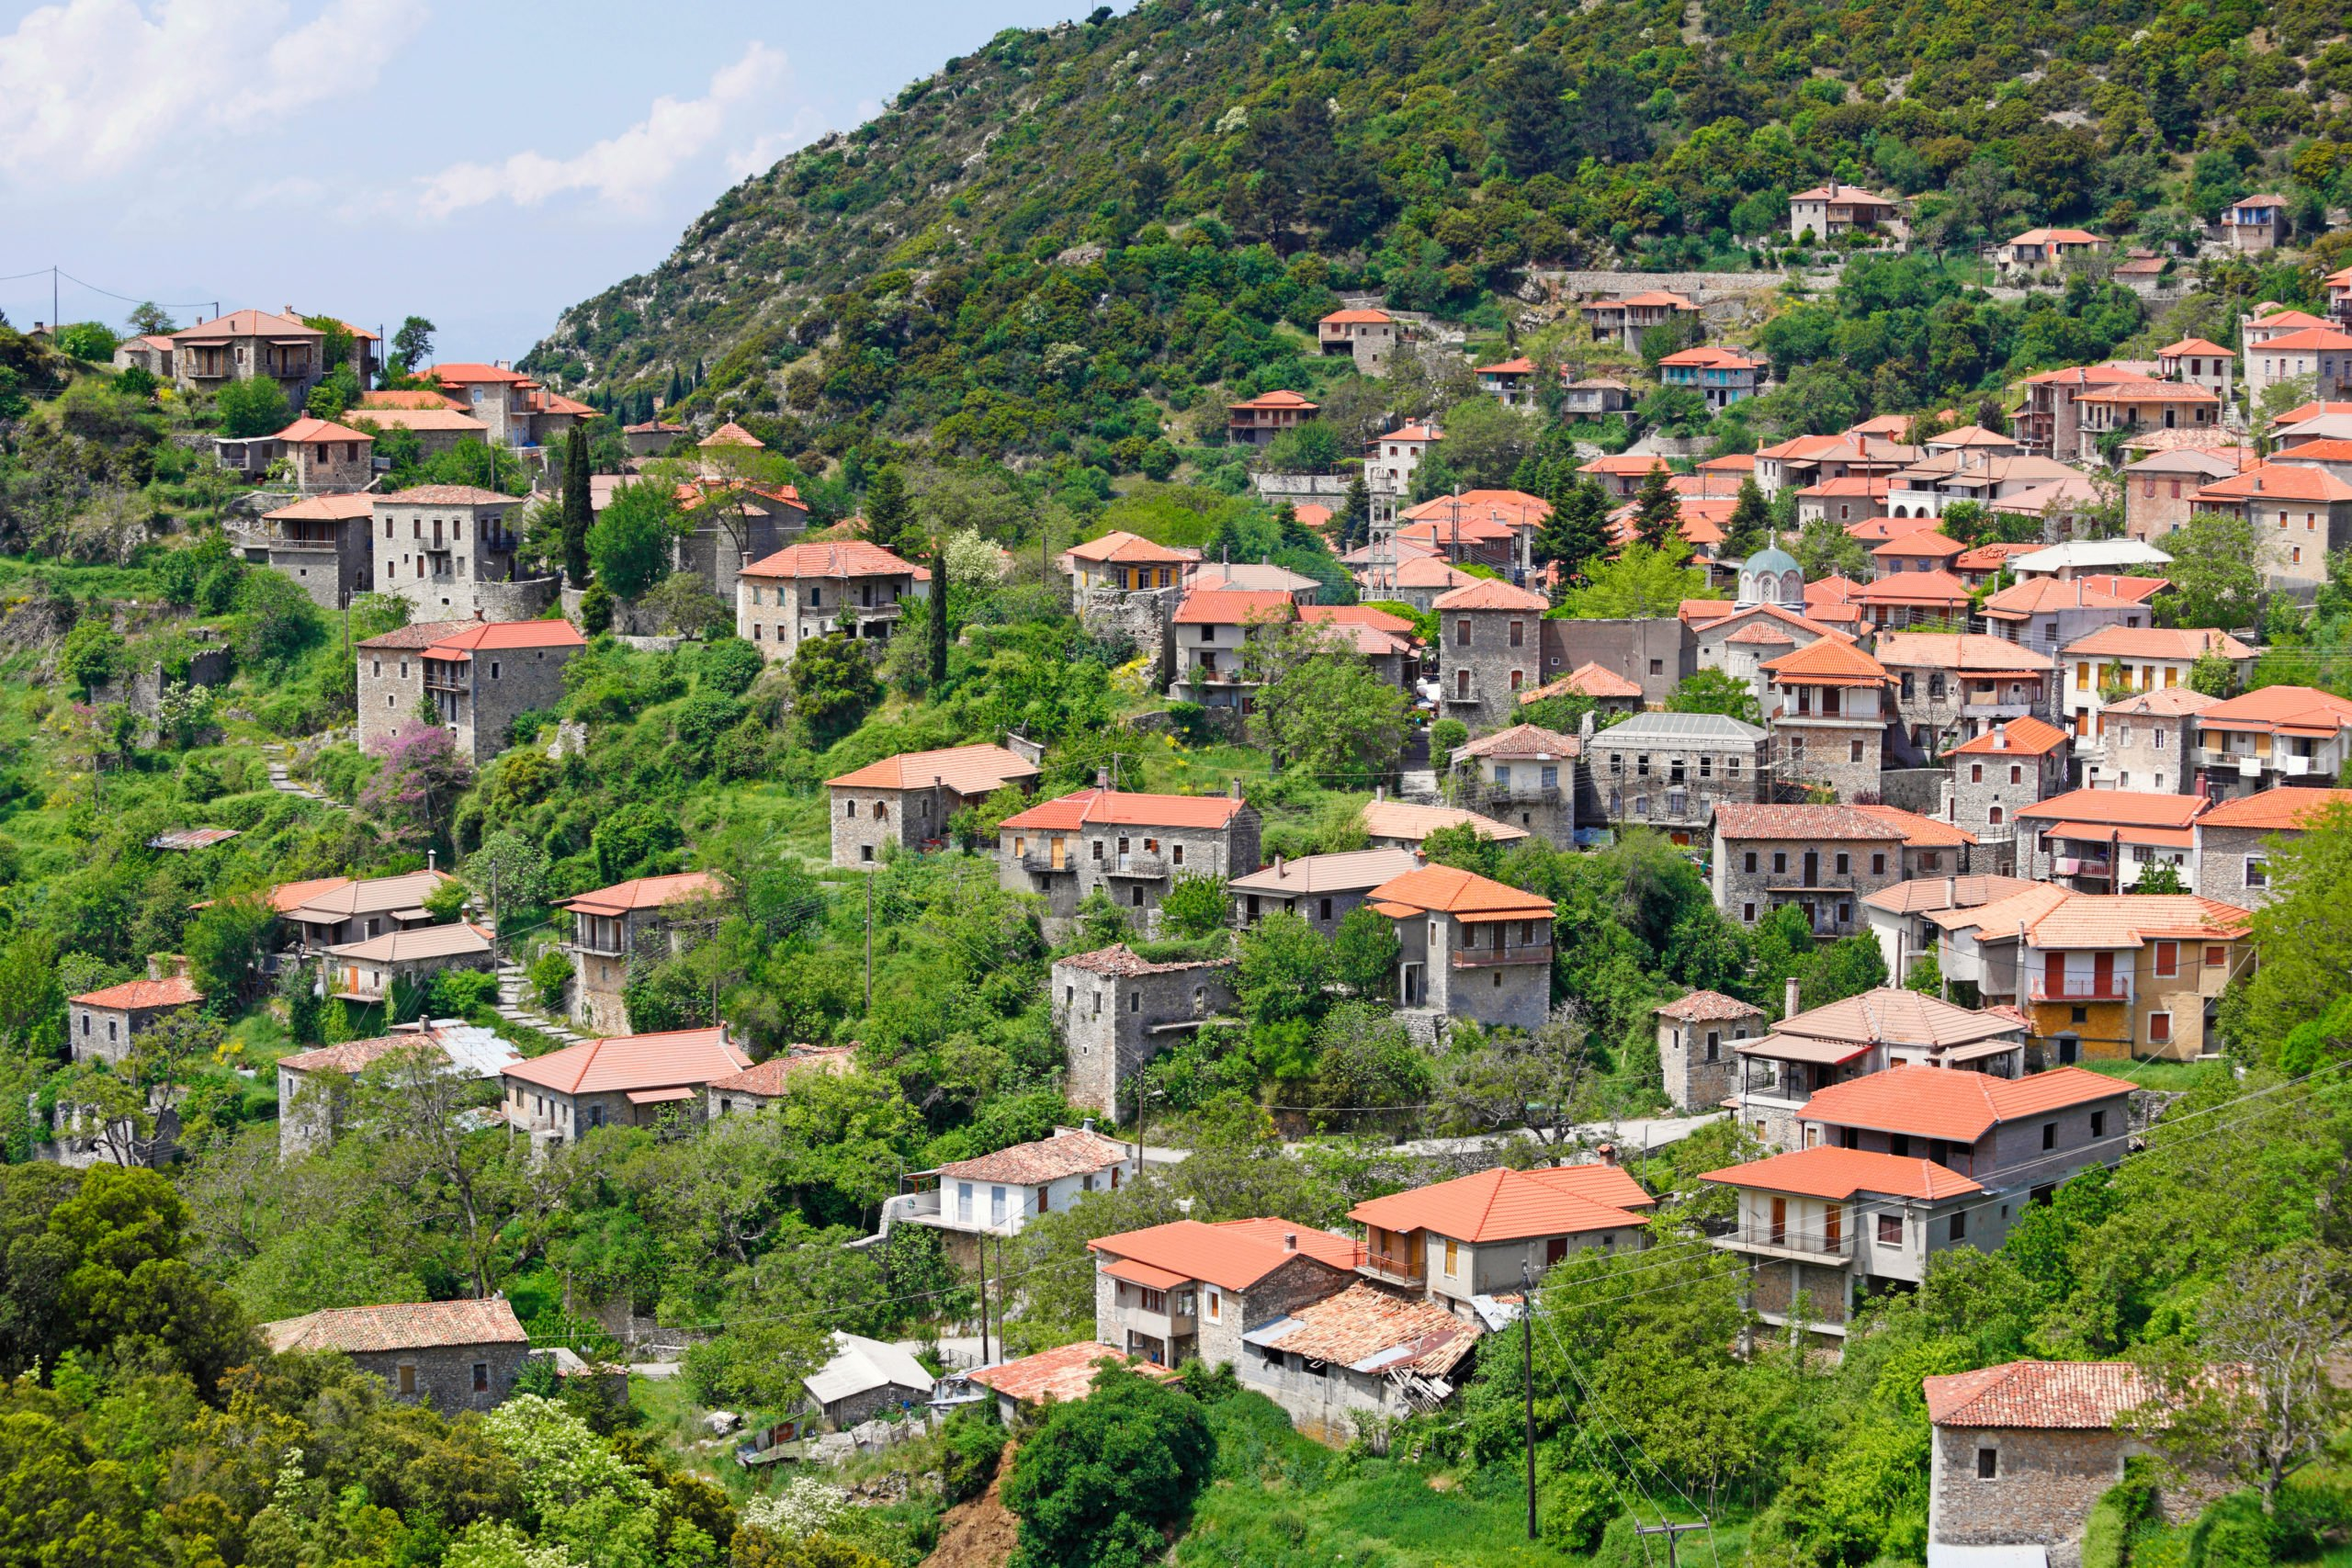 Explore The Traditional Village Of Stemnitsa On The Peloponnese Rafting & Hiking Experience From Athens